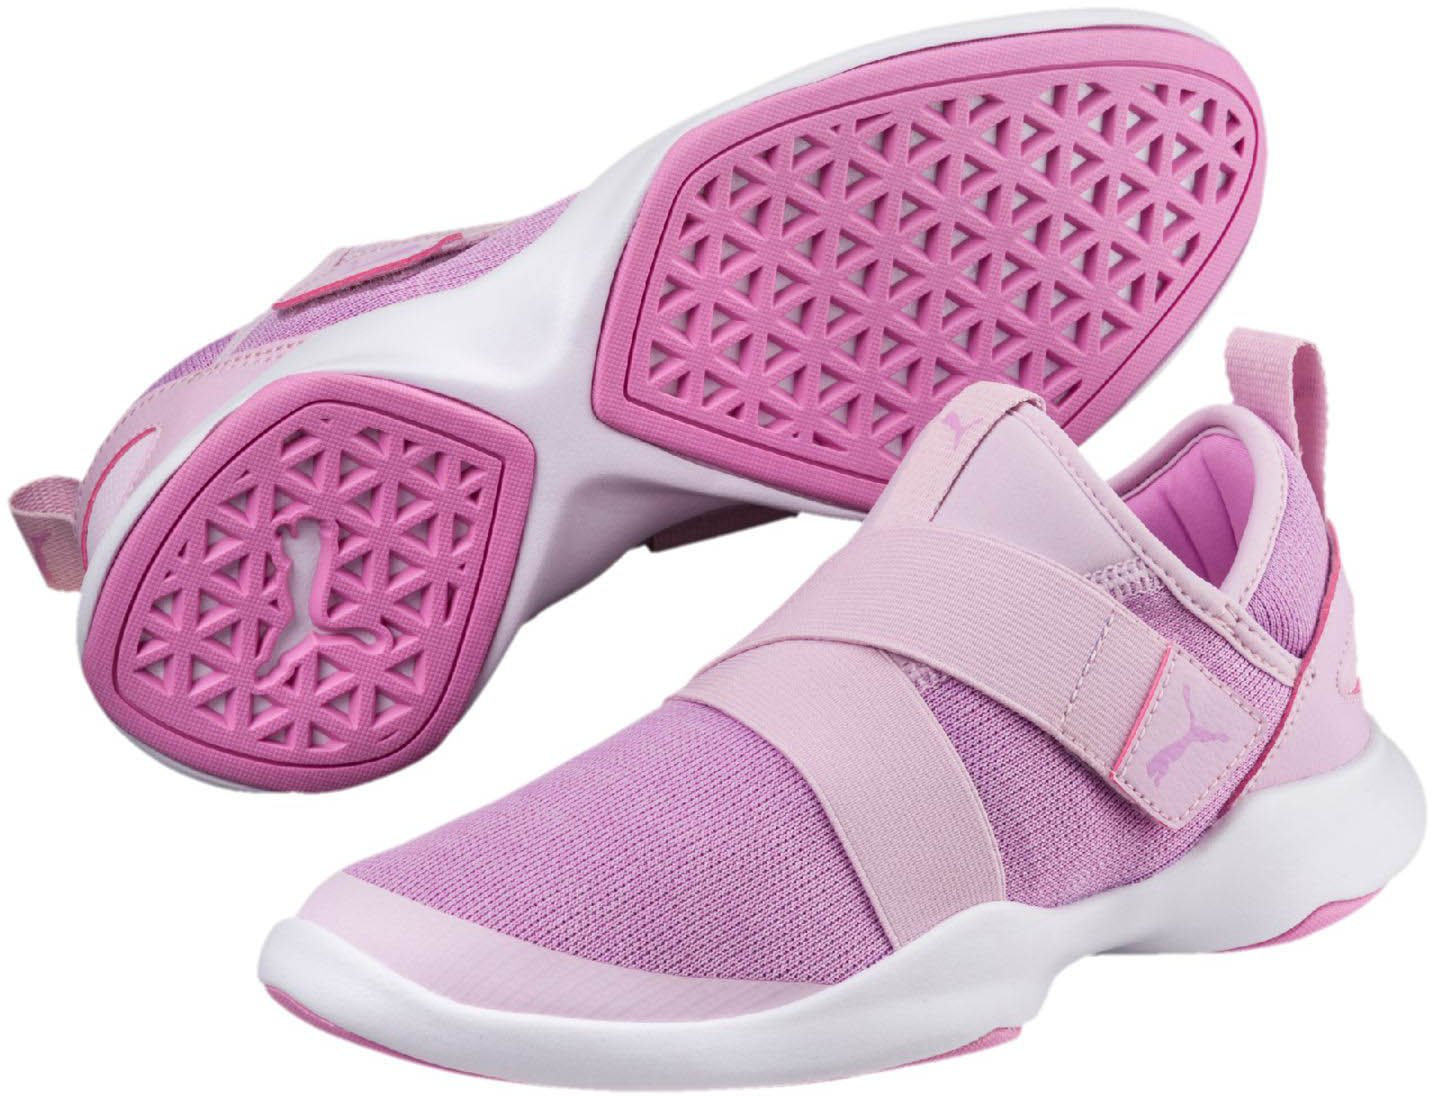 PUMA Women's Dare M Ac Sneaker B078C85Z71 11 M Dare US|Winsome Orchid-orchid 0edf6b